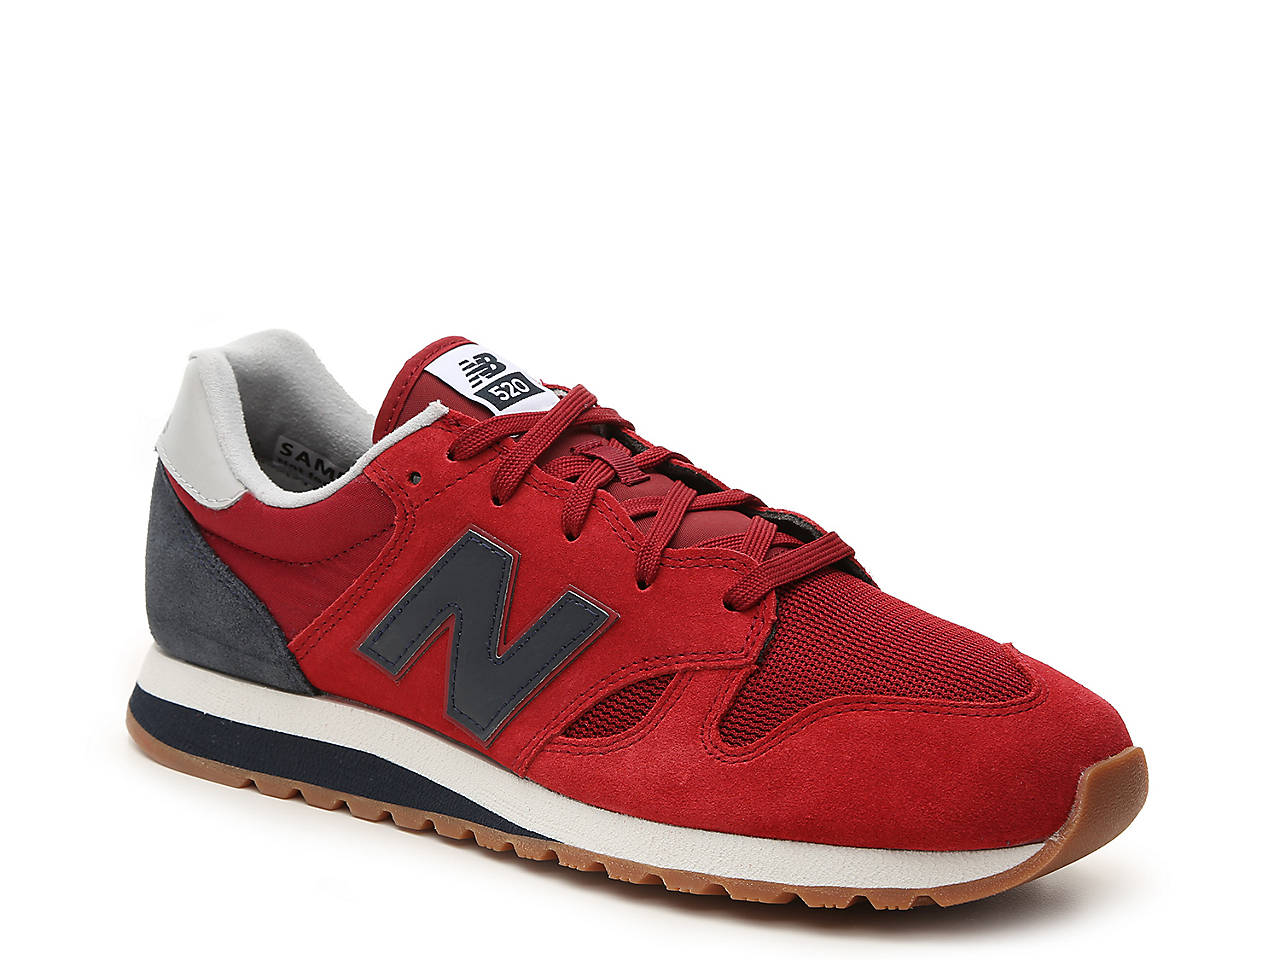 3687572f6eeea New Balance 520 Retro Sneaker - Men's Men's Shoes | DSW